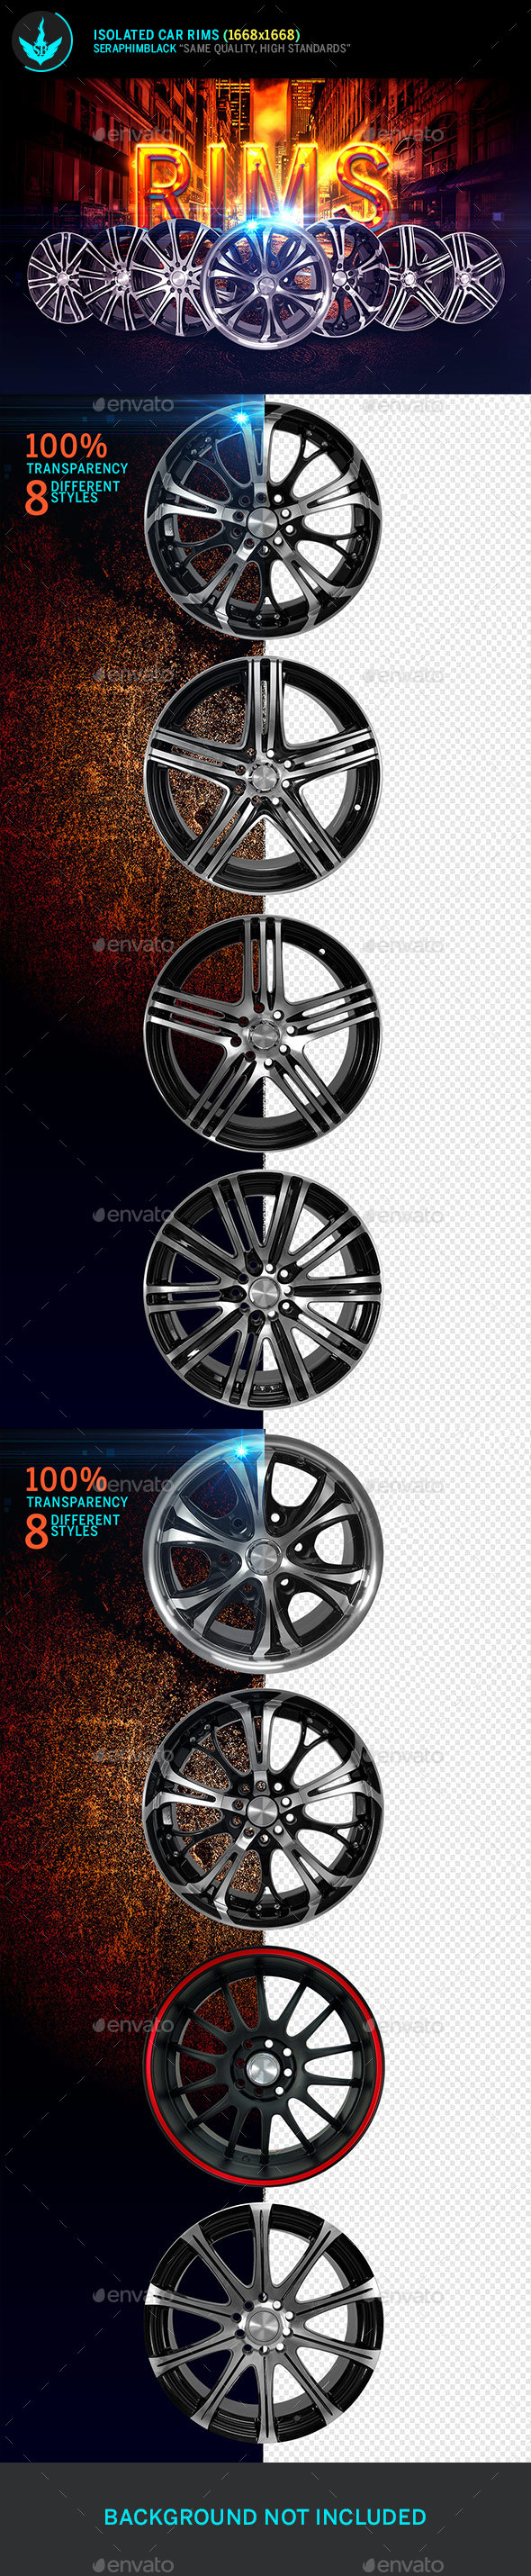 Isolated Car Rims - Isolated Objects